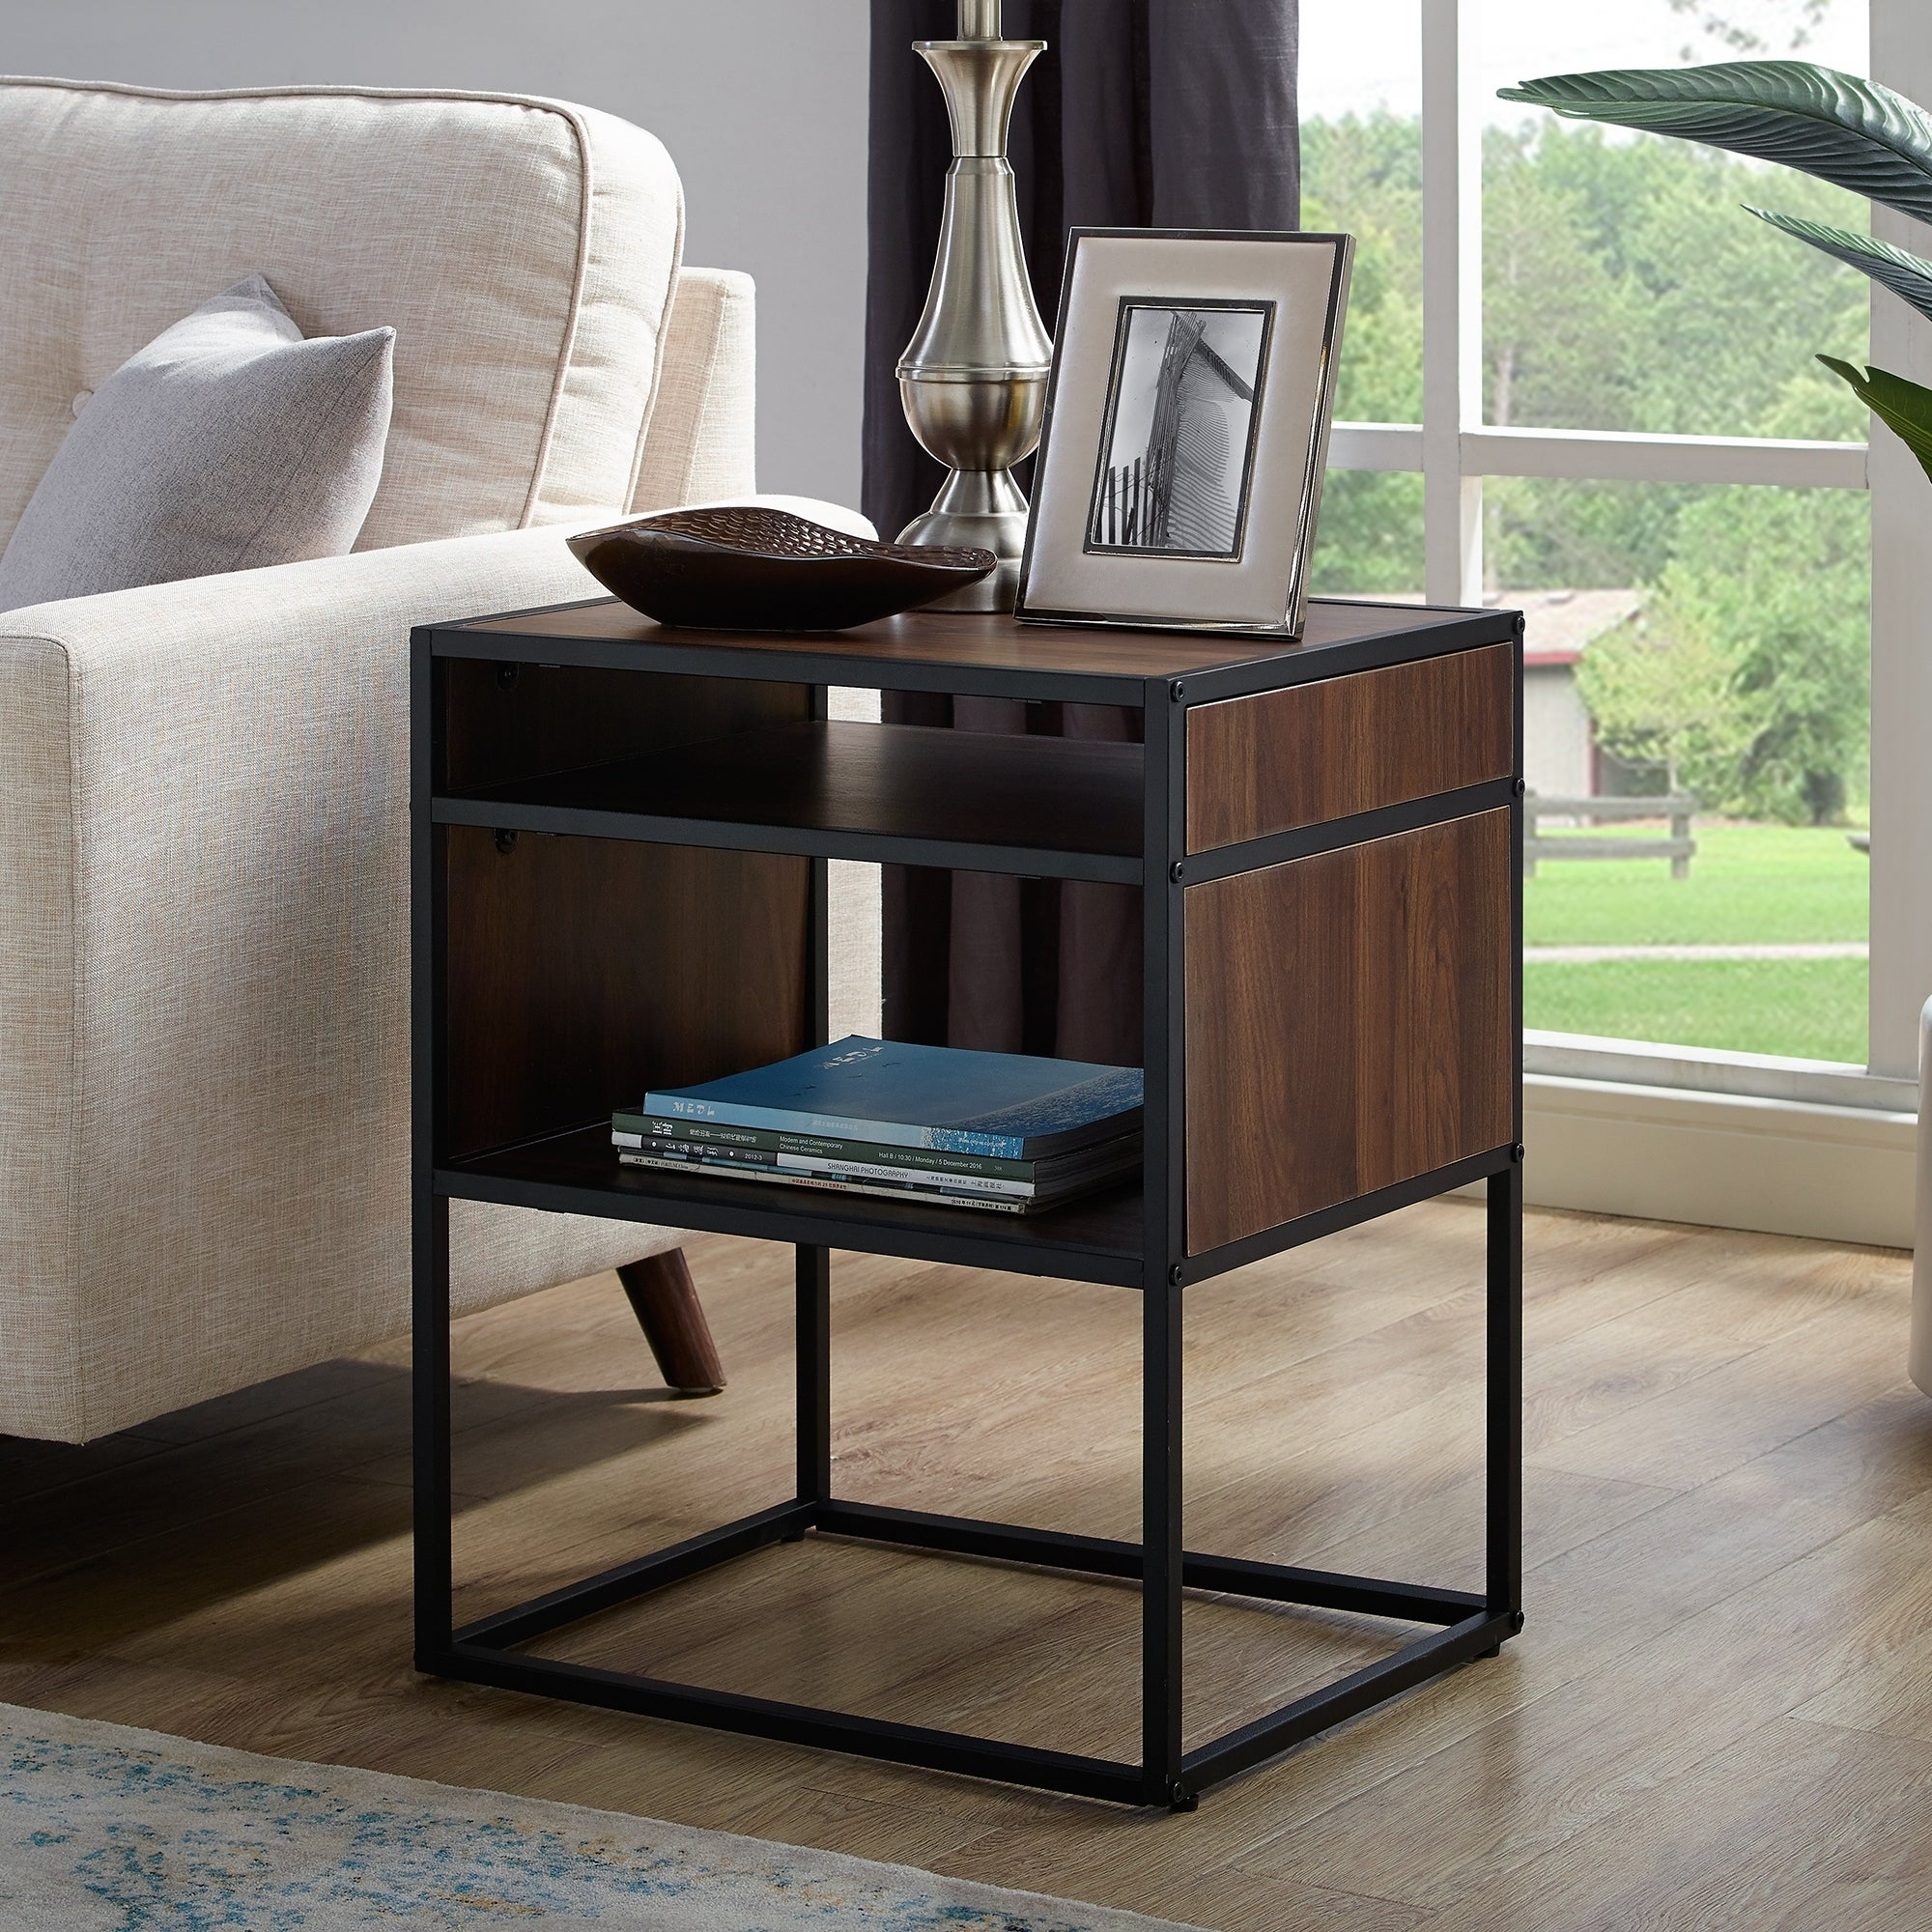 Best Of 30 Inch High End Table